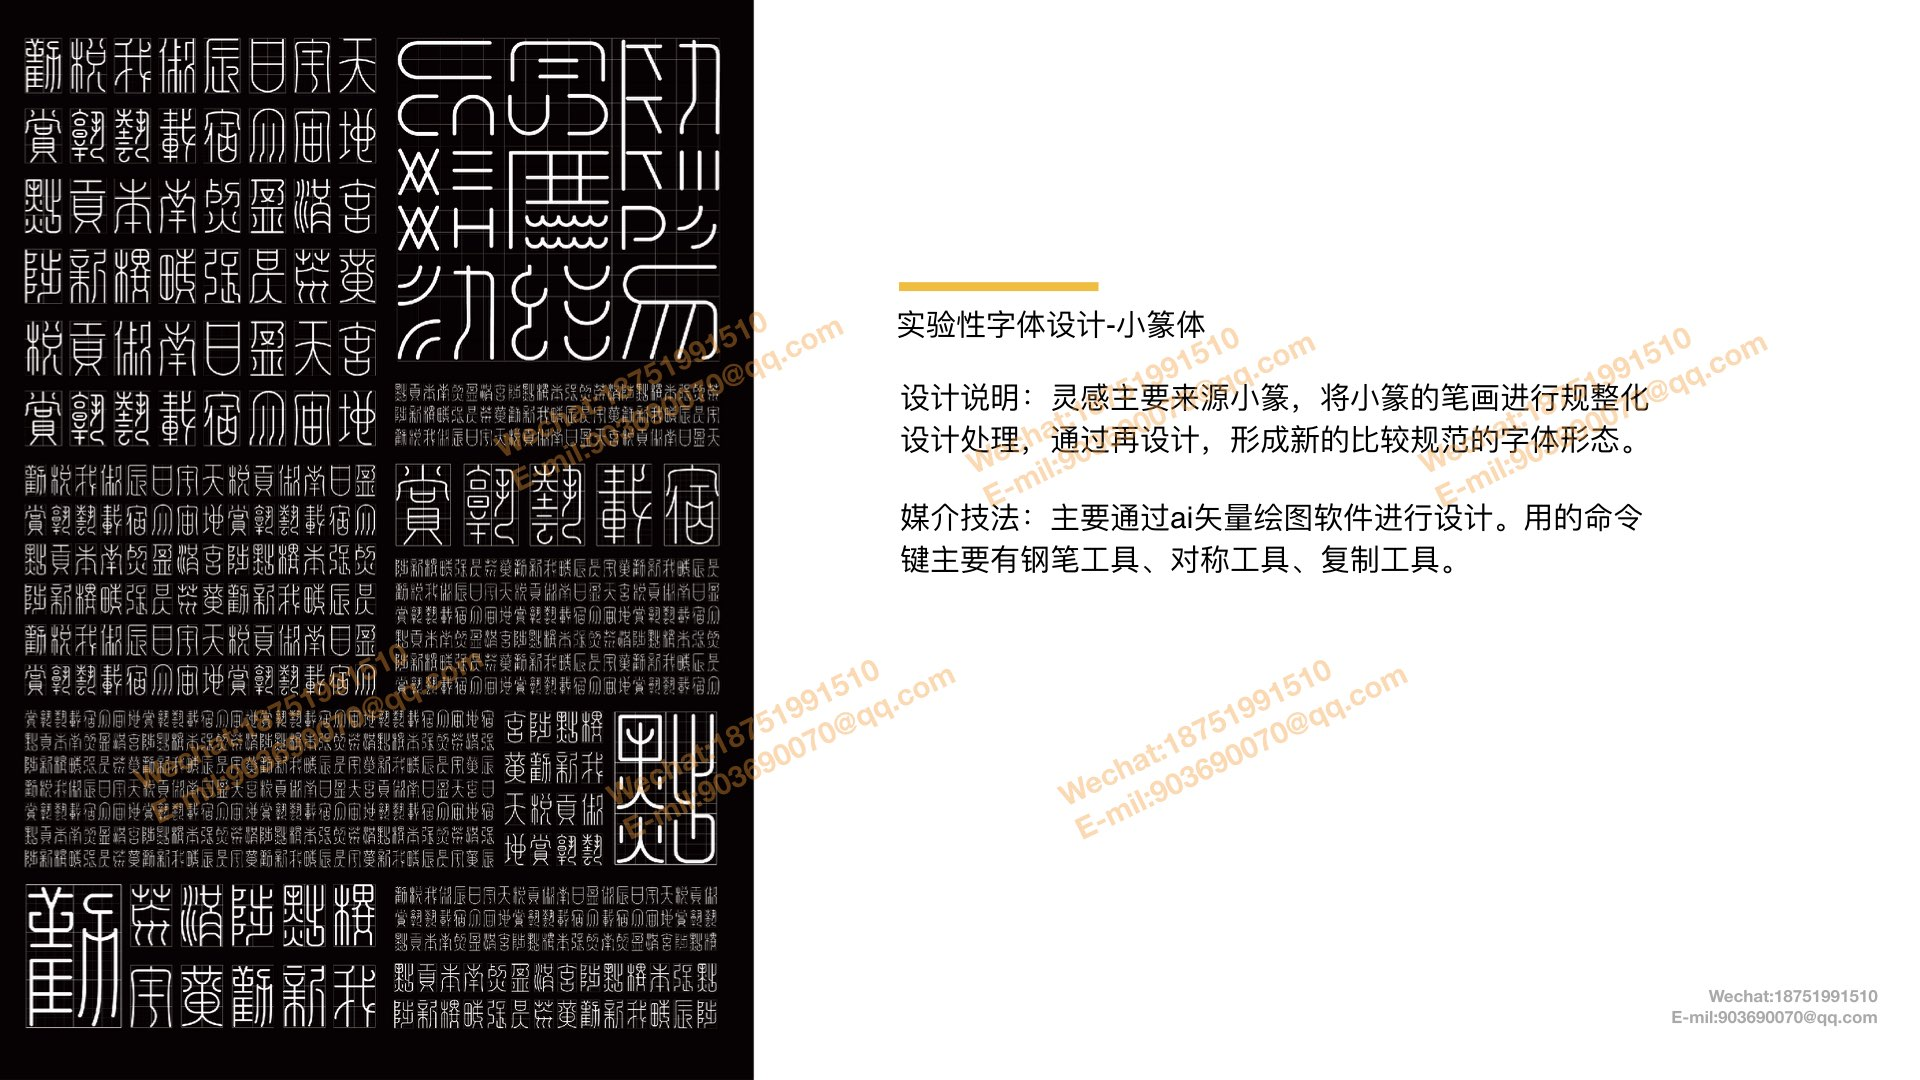 Experimental Font Poster Design-Method Interpretation